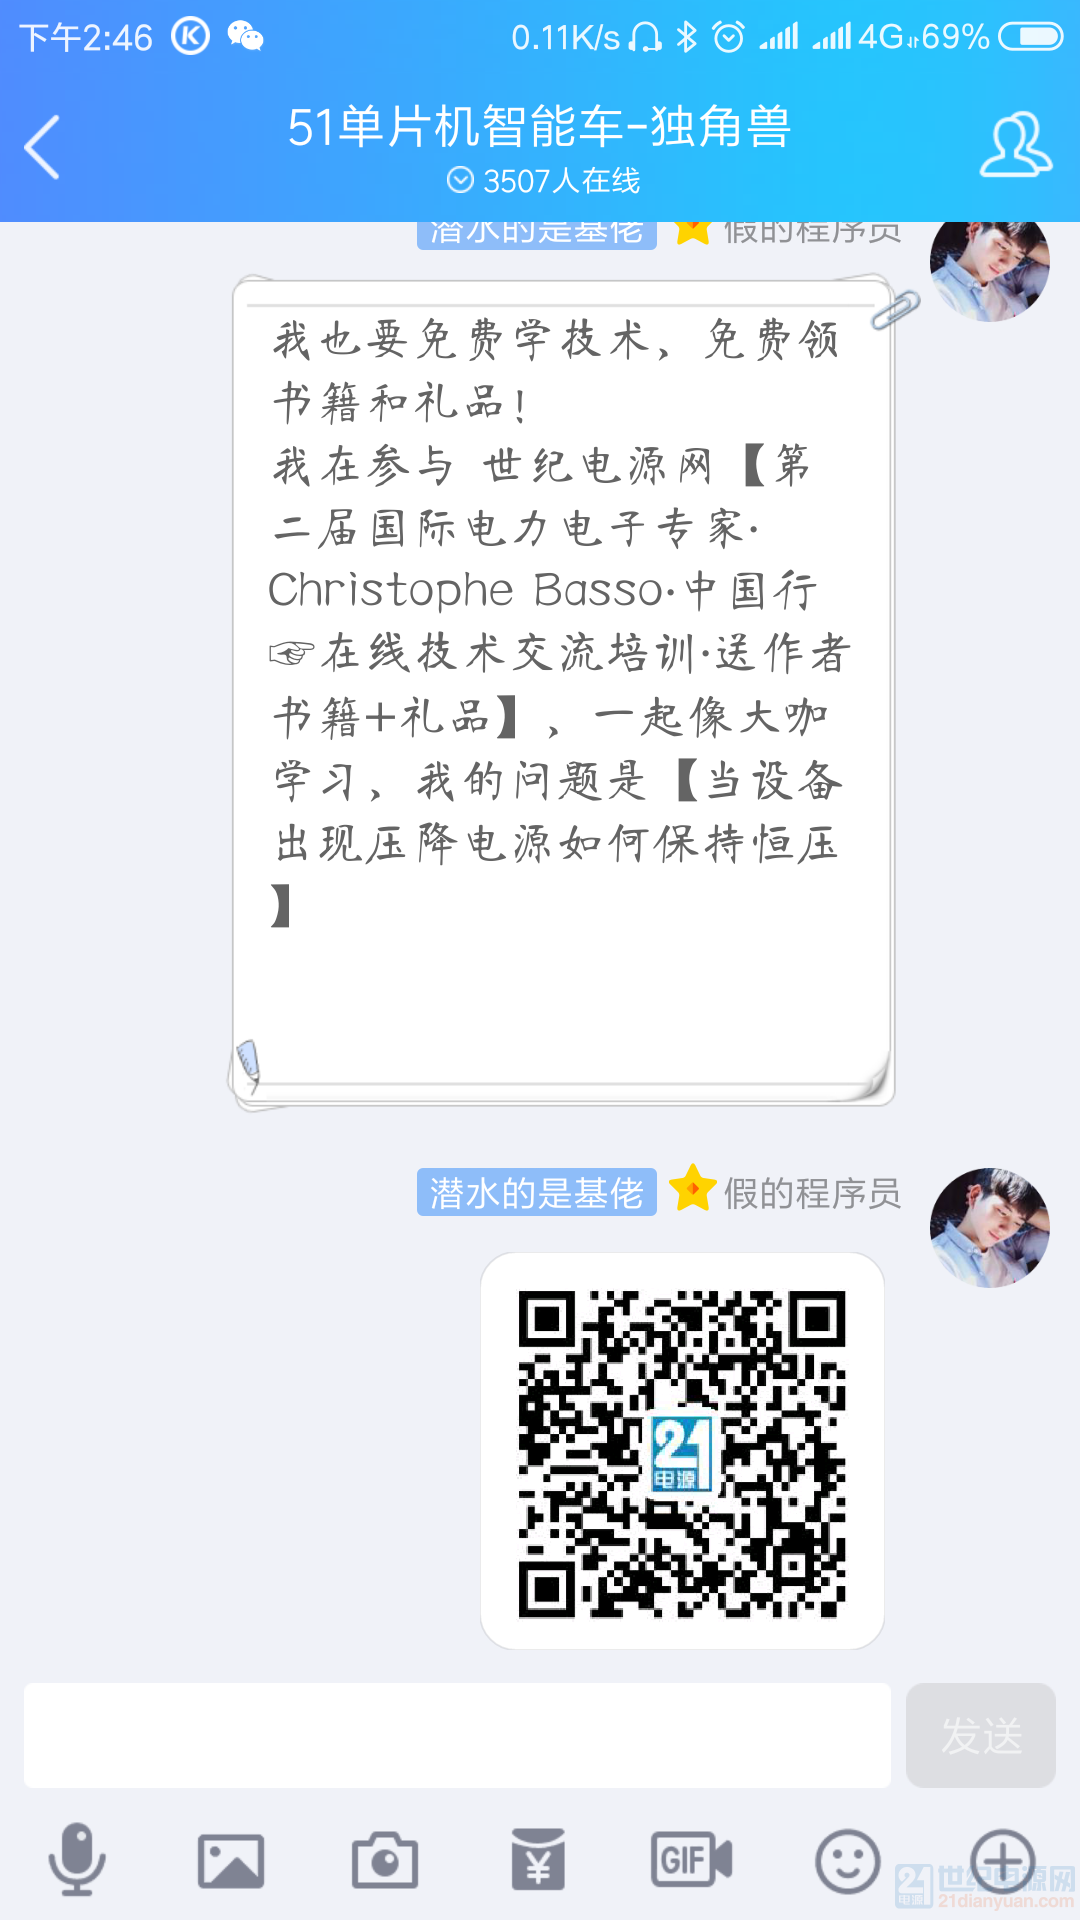 Screenshot_2018-10-12-14-46-20-020_com.tencent.mobileqq.png